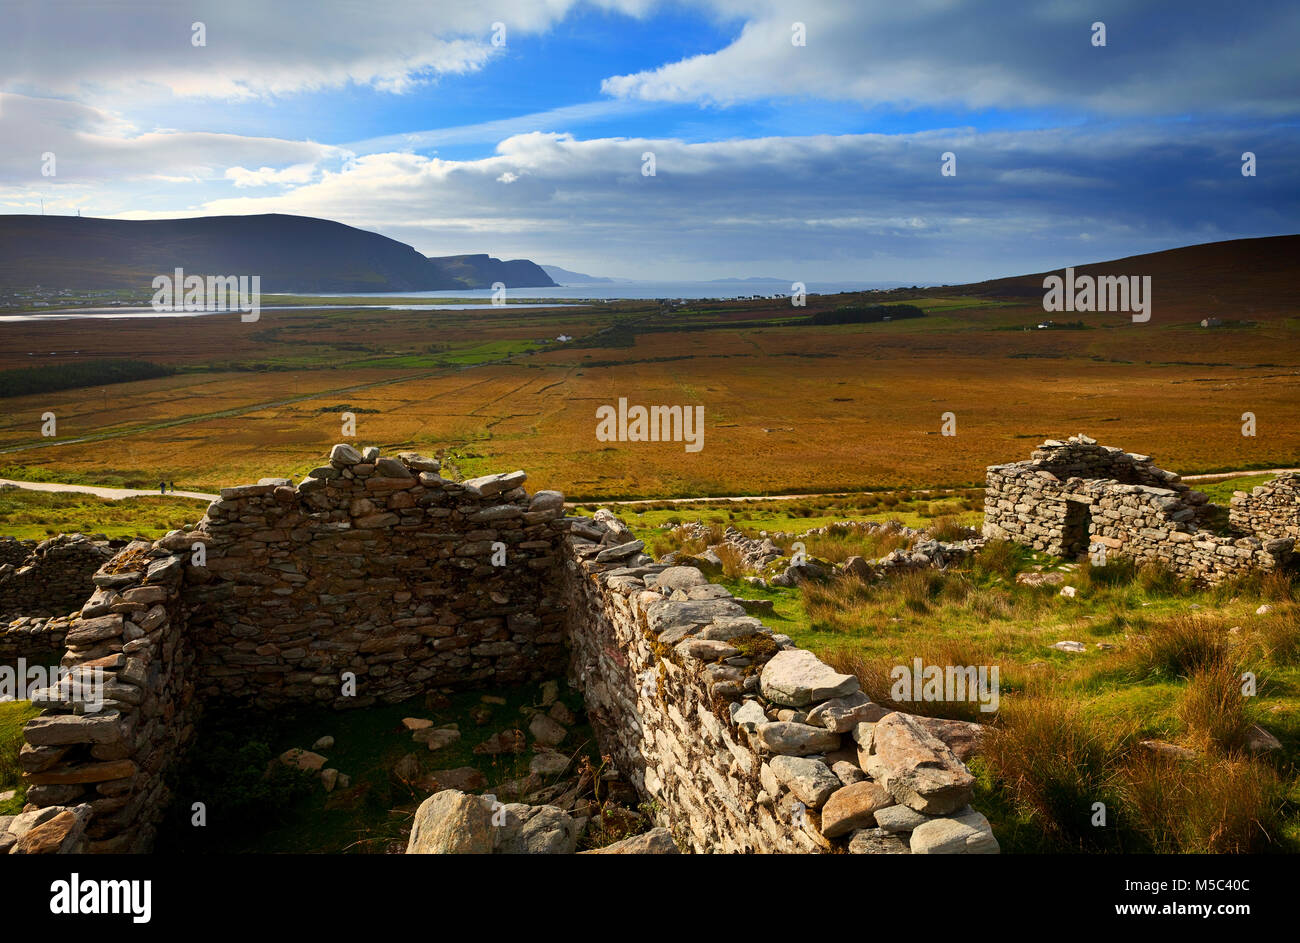 The Missionary Settlement - or the Deserted Village on the side of  Slievemore mountain, Achill Island, County Mayo, - Stock Image